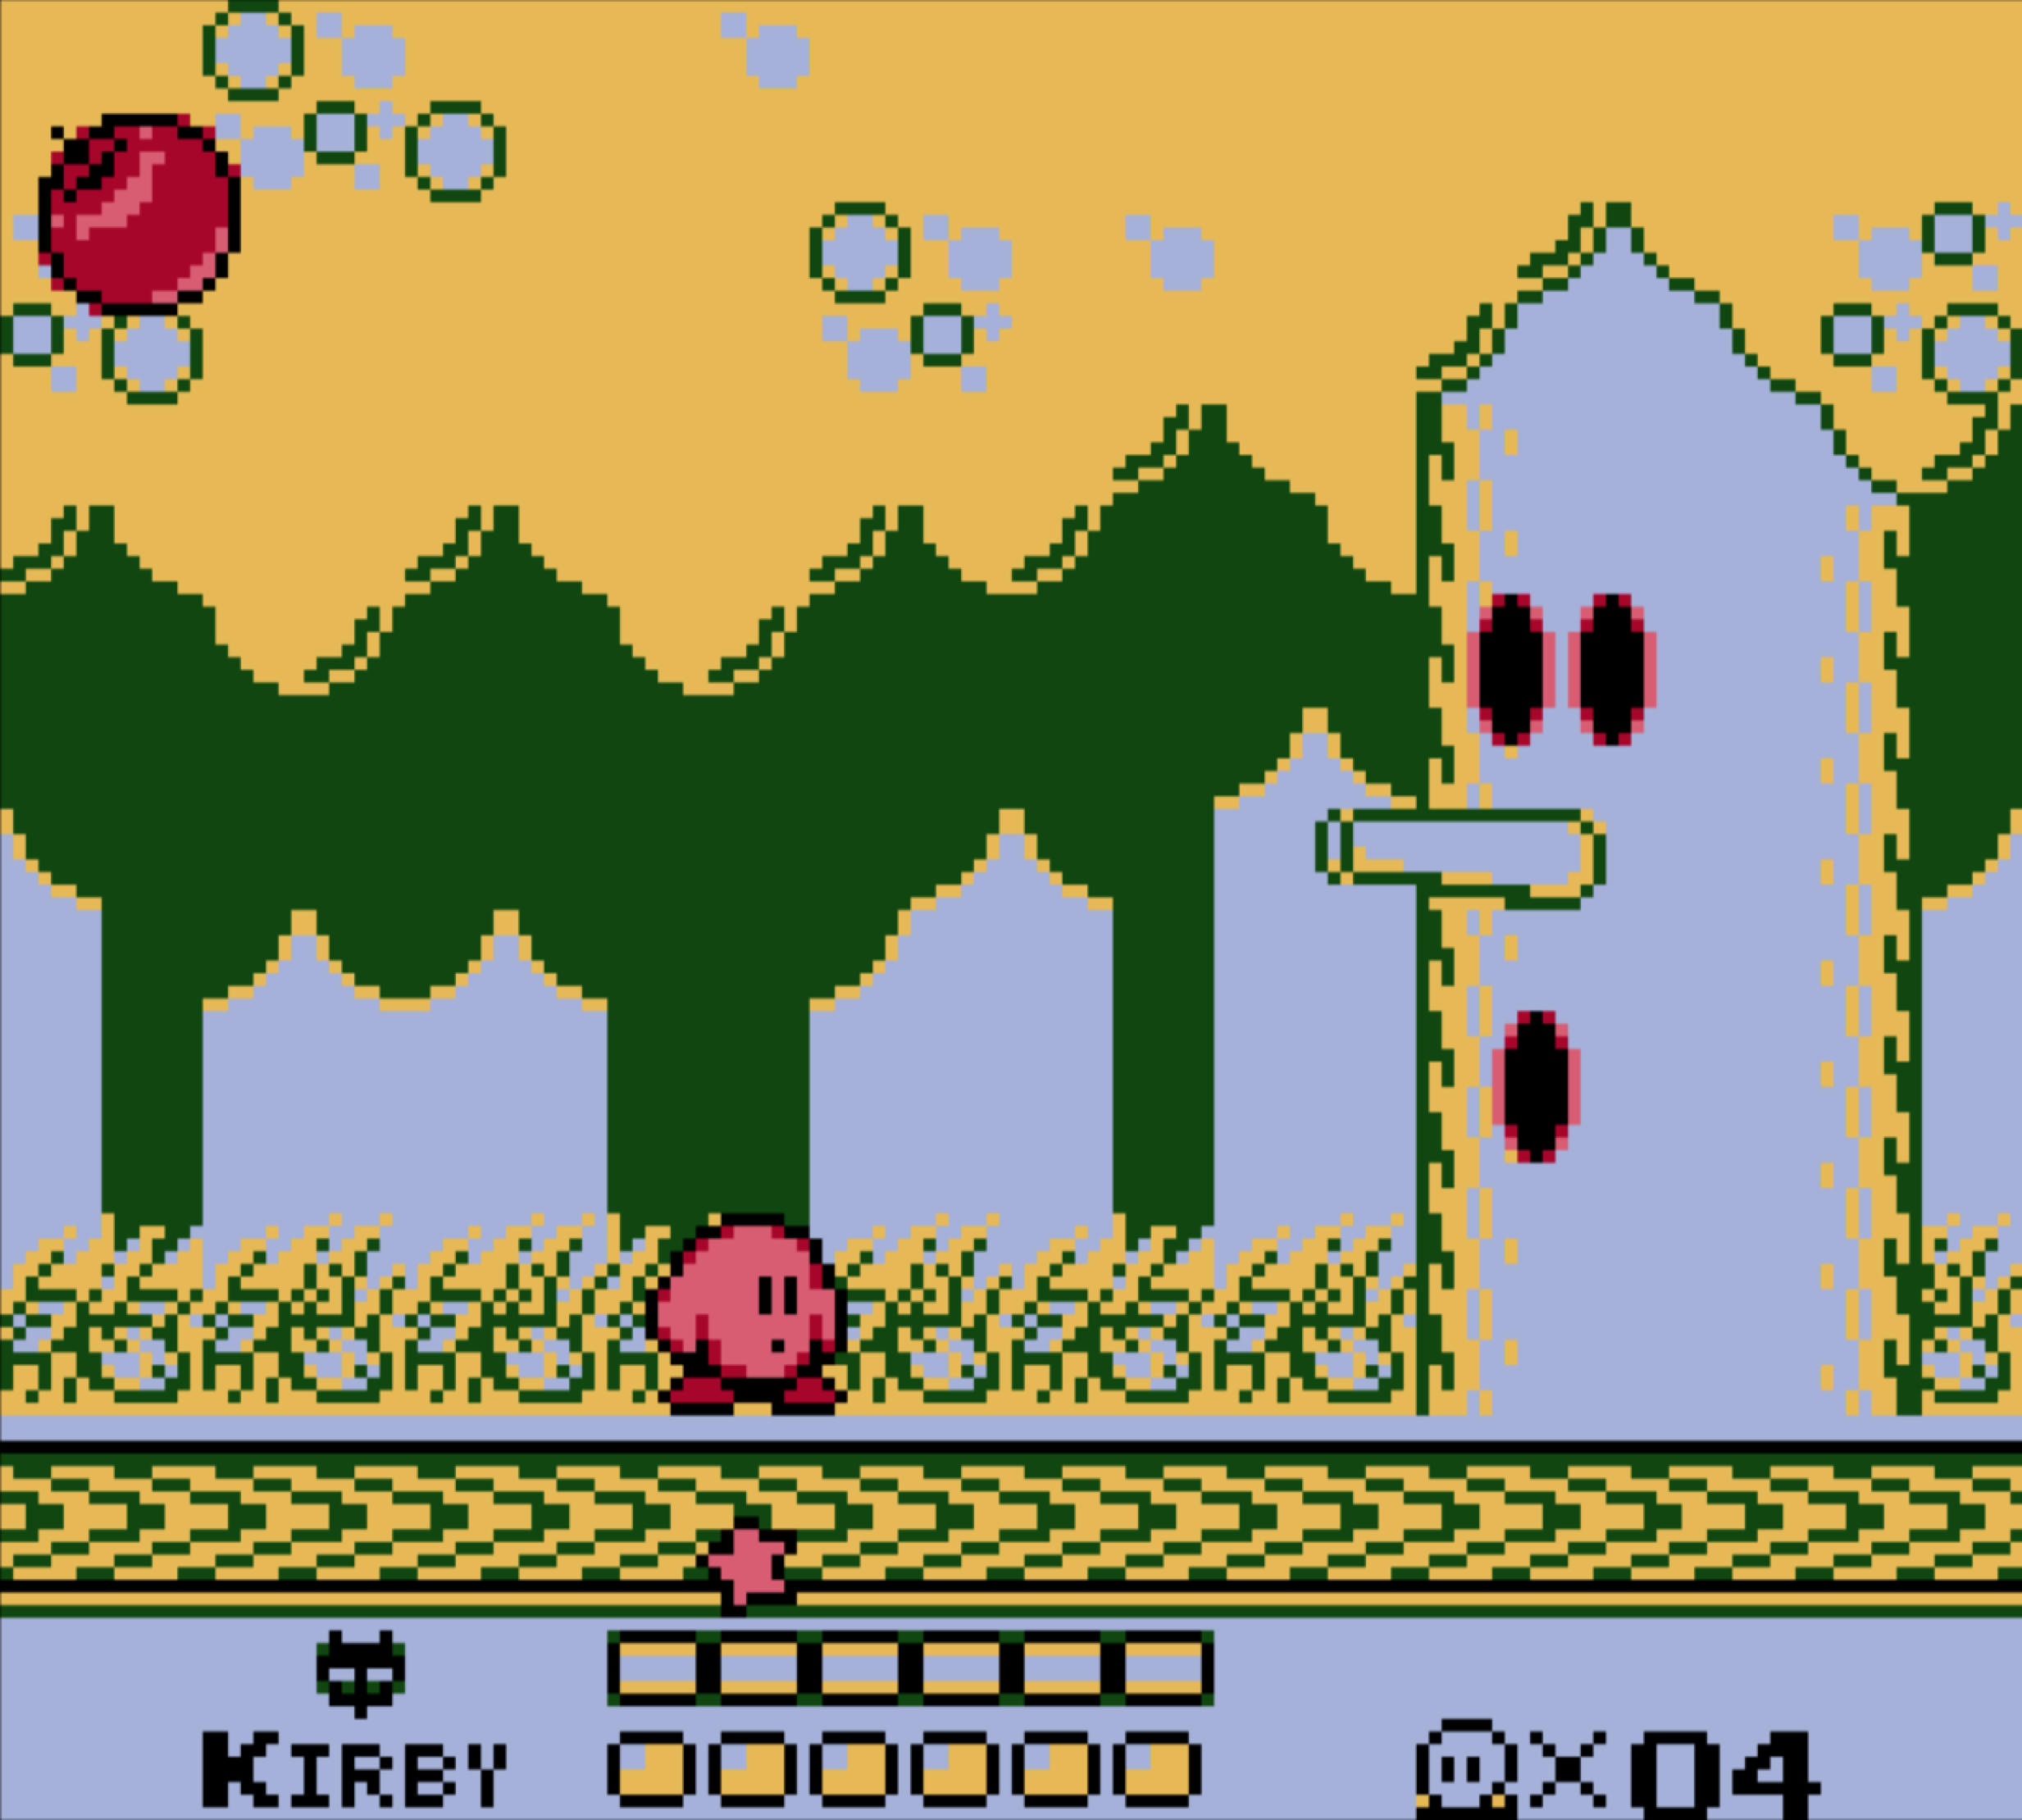 Ever the environmentalist, Kirby prepares to kill this tree.